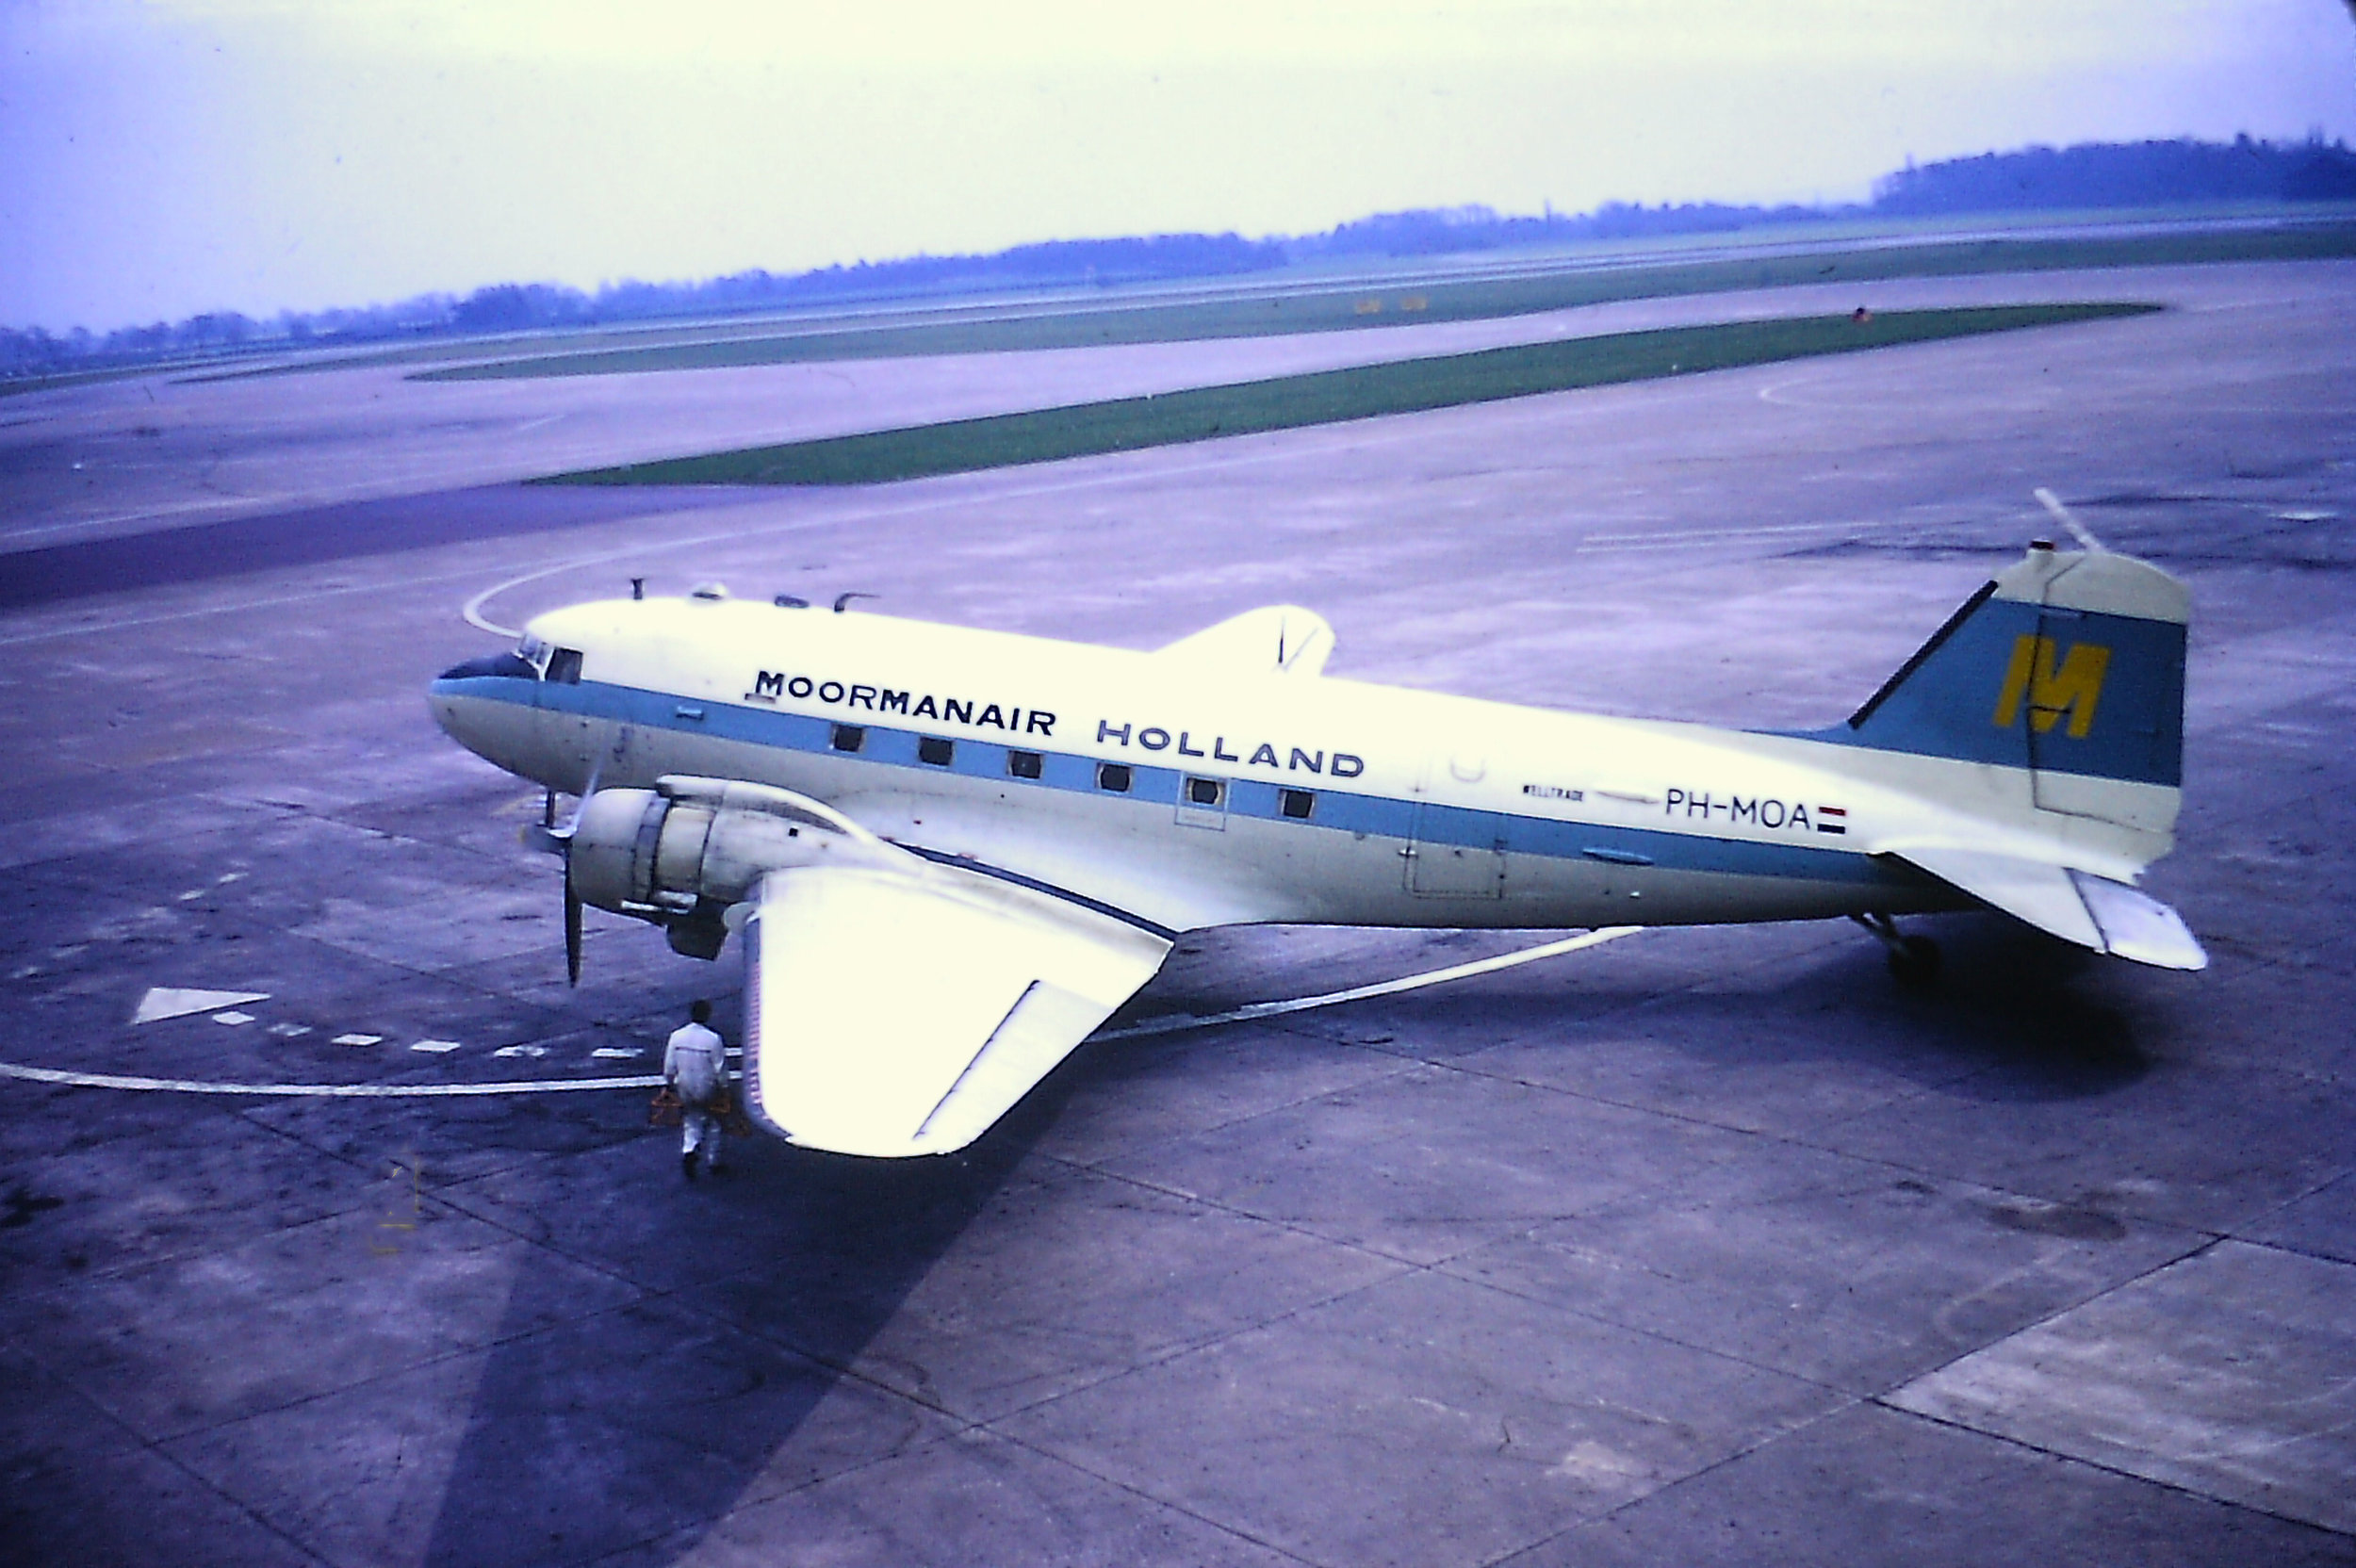 I think we all love a classic shot of a Dakota! Here's a beauty from 8th April 1971 submitted from the Eric Wright collection. Dutch carrier Moormanair were occasional visitors to Manchester . DC3 PH-MOA strikes a typical pose on the East side of Pier B.